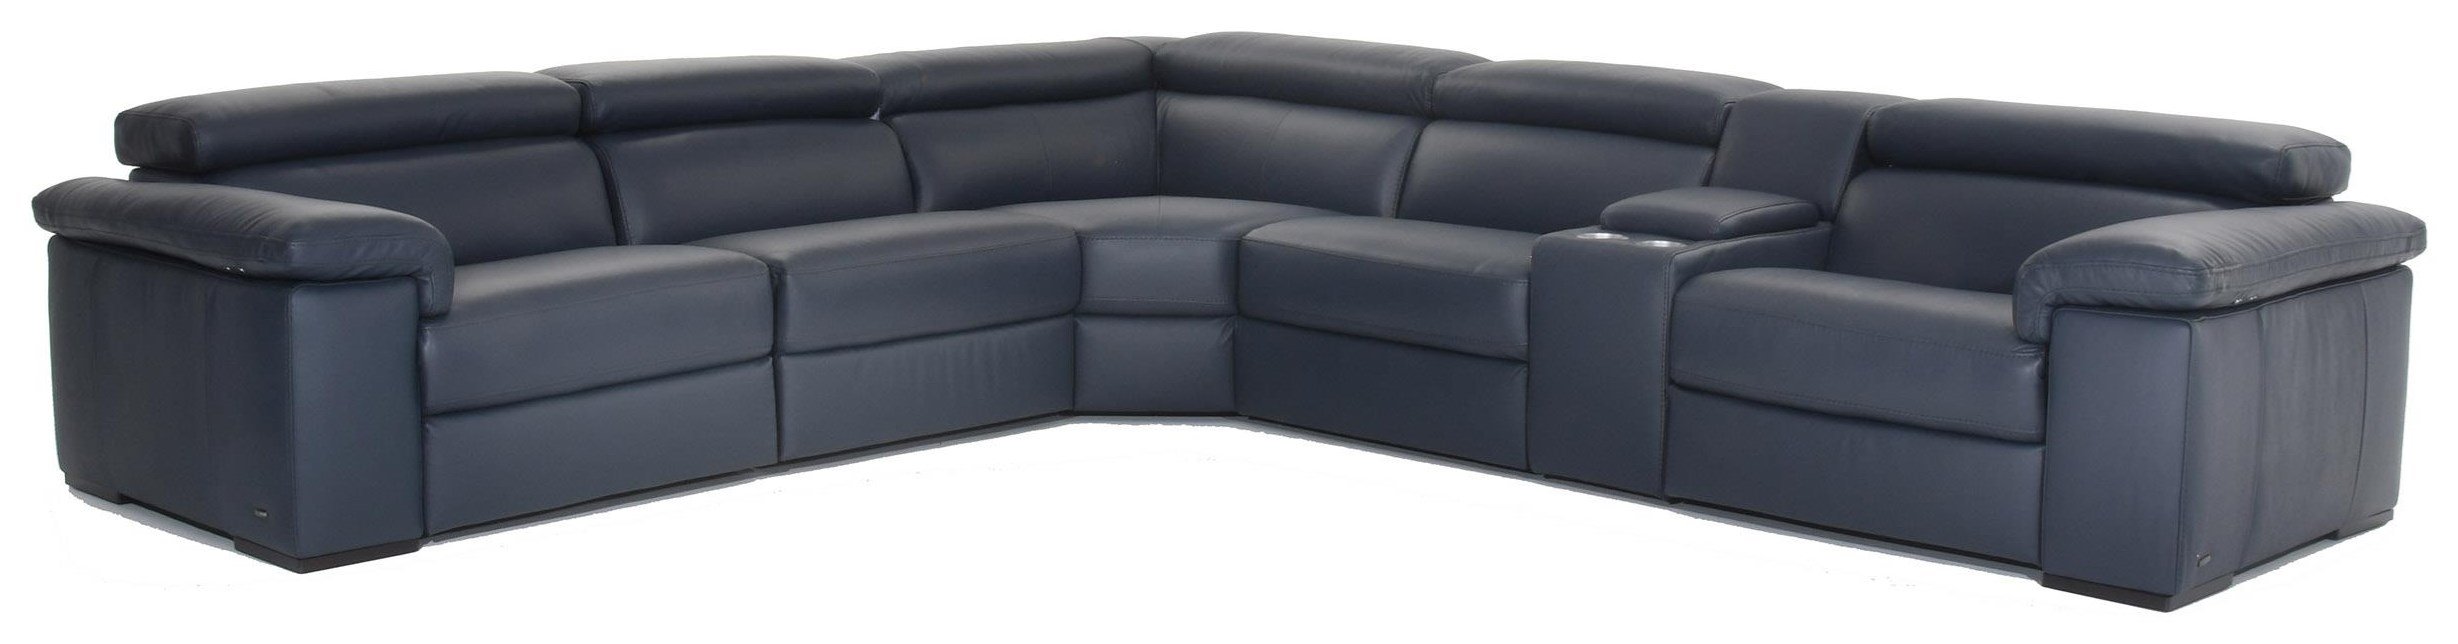 Solare Power Reclining Leather Sectional by Natuzzi Editions at Baer's Furniture